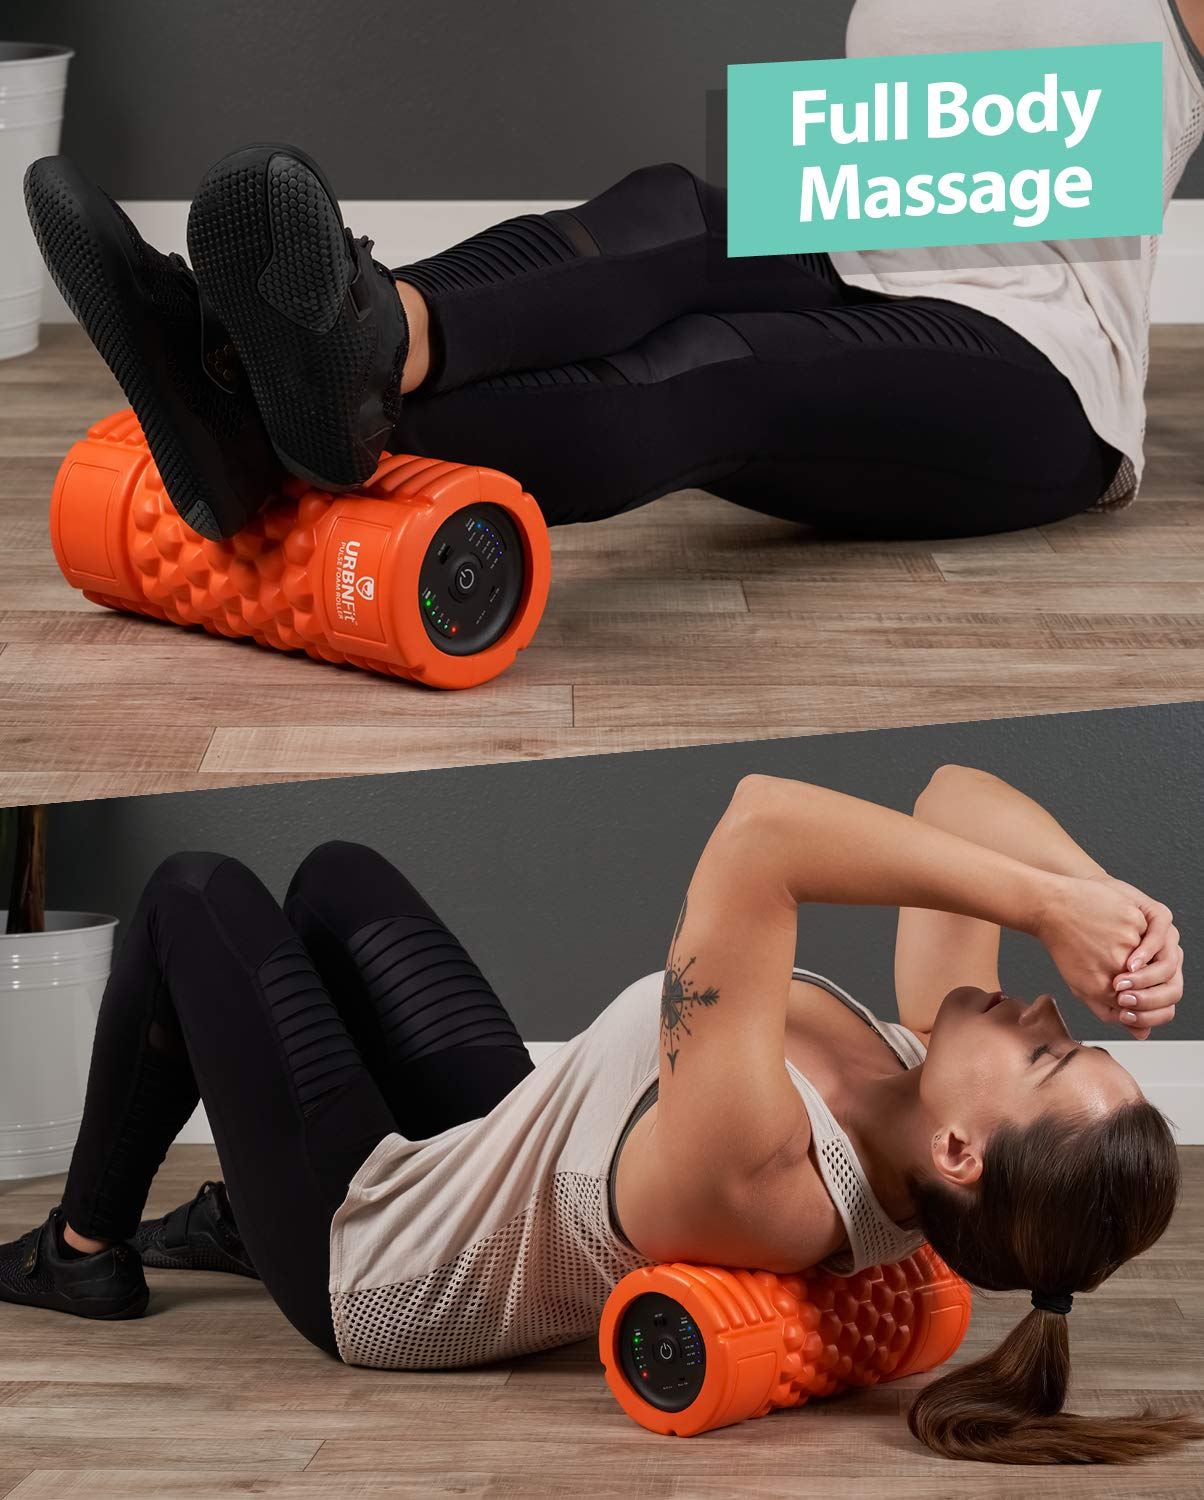 Vibrating Foam Roller - 5-Speed Massager and Roller for Muscle Recovery, Deep Tissue Trigger Point Massage Therapy - 5 Levels from Low To High Intensity Massage For Workouts -Includes Stretching Guide by URBNFit (Image #5)